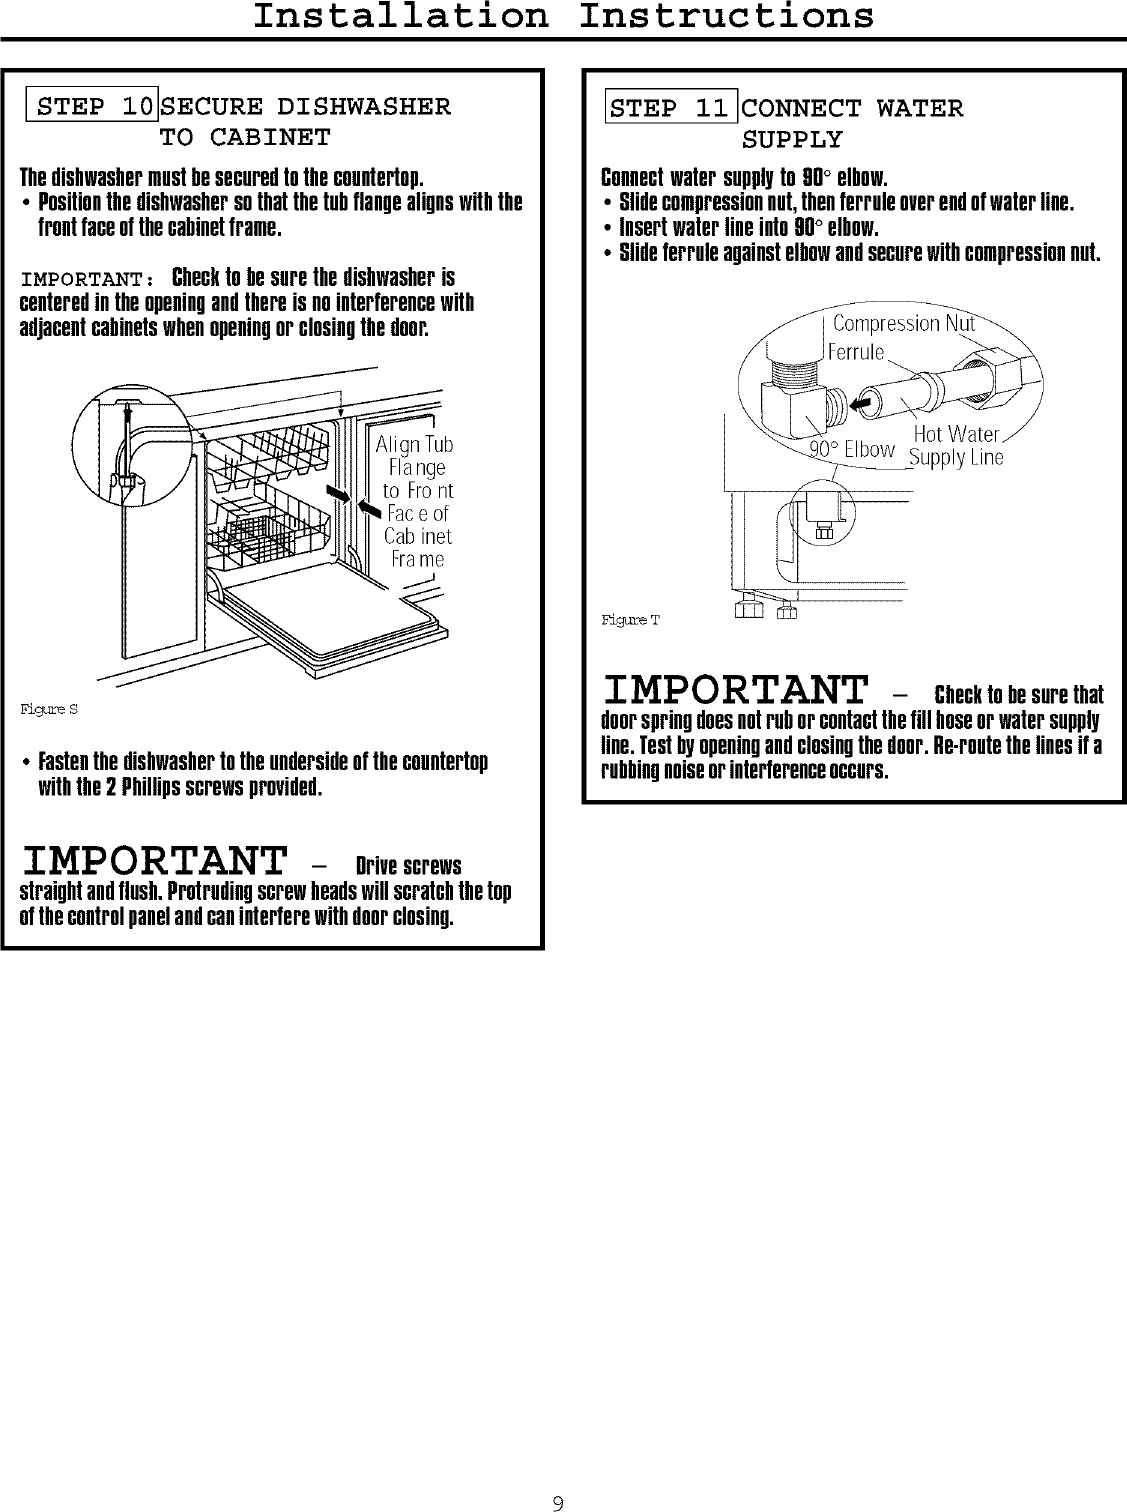 Frigidaire Fmb330rgs0 User Manual Dishwasher Manuals And Guides L0709007 Schematic Diagram Page 9 Of 12